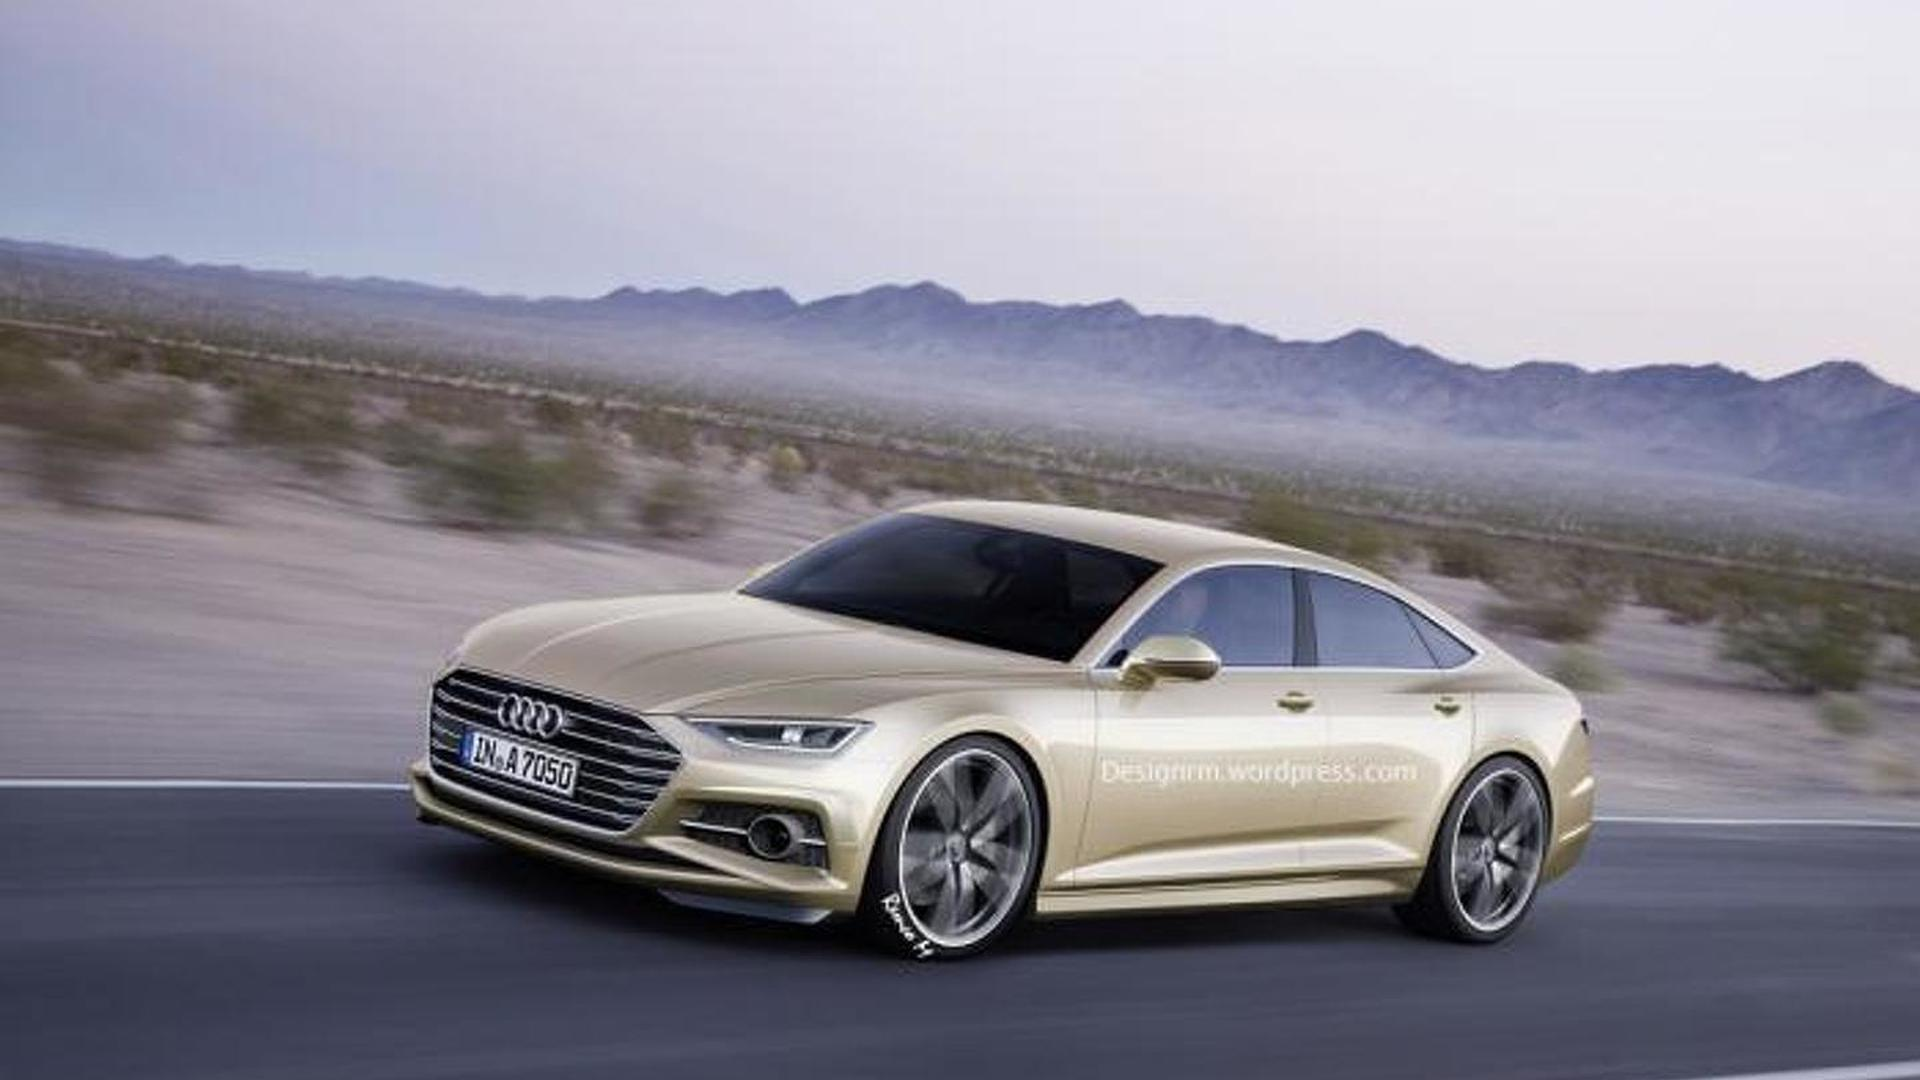 Next generation Audi A7 to sit lower and have a more expressive body